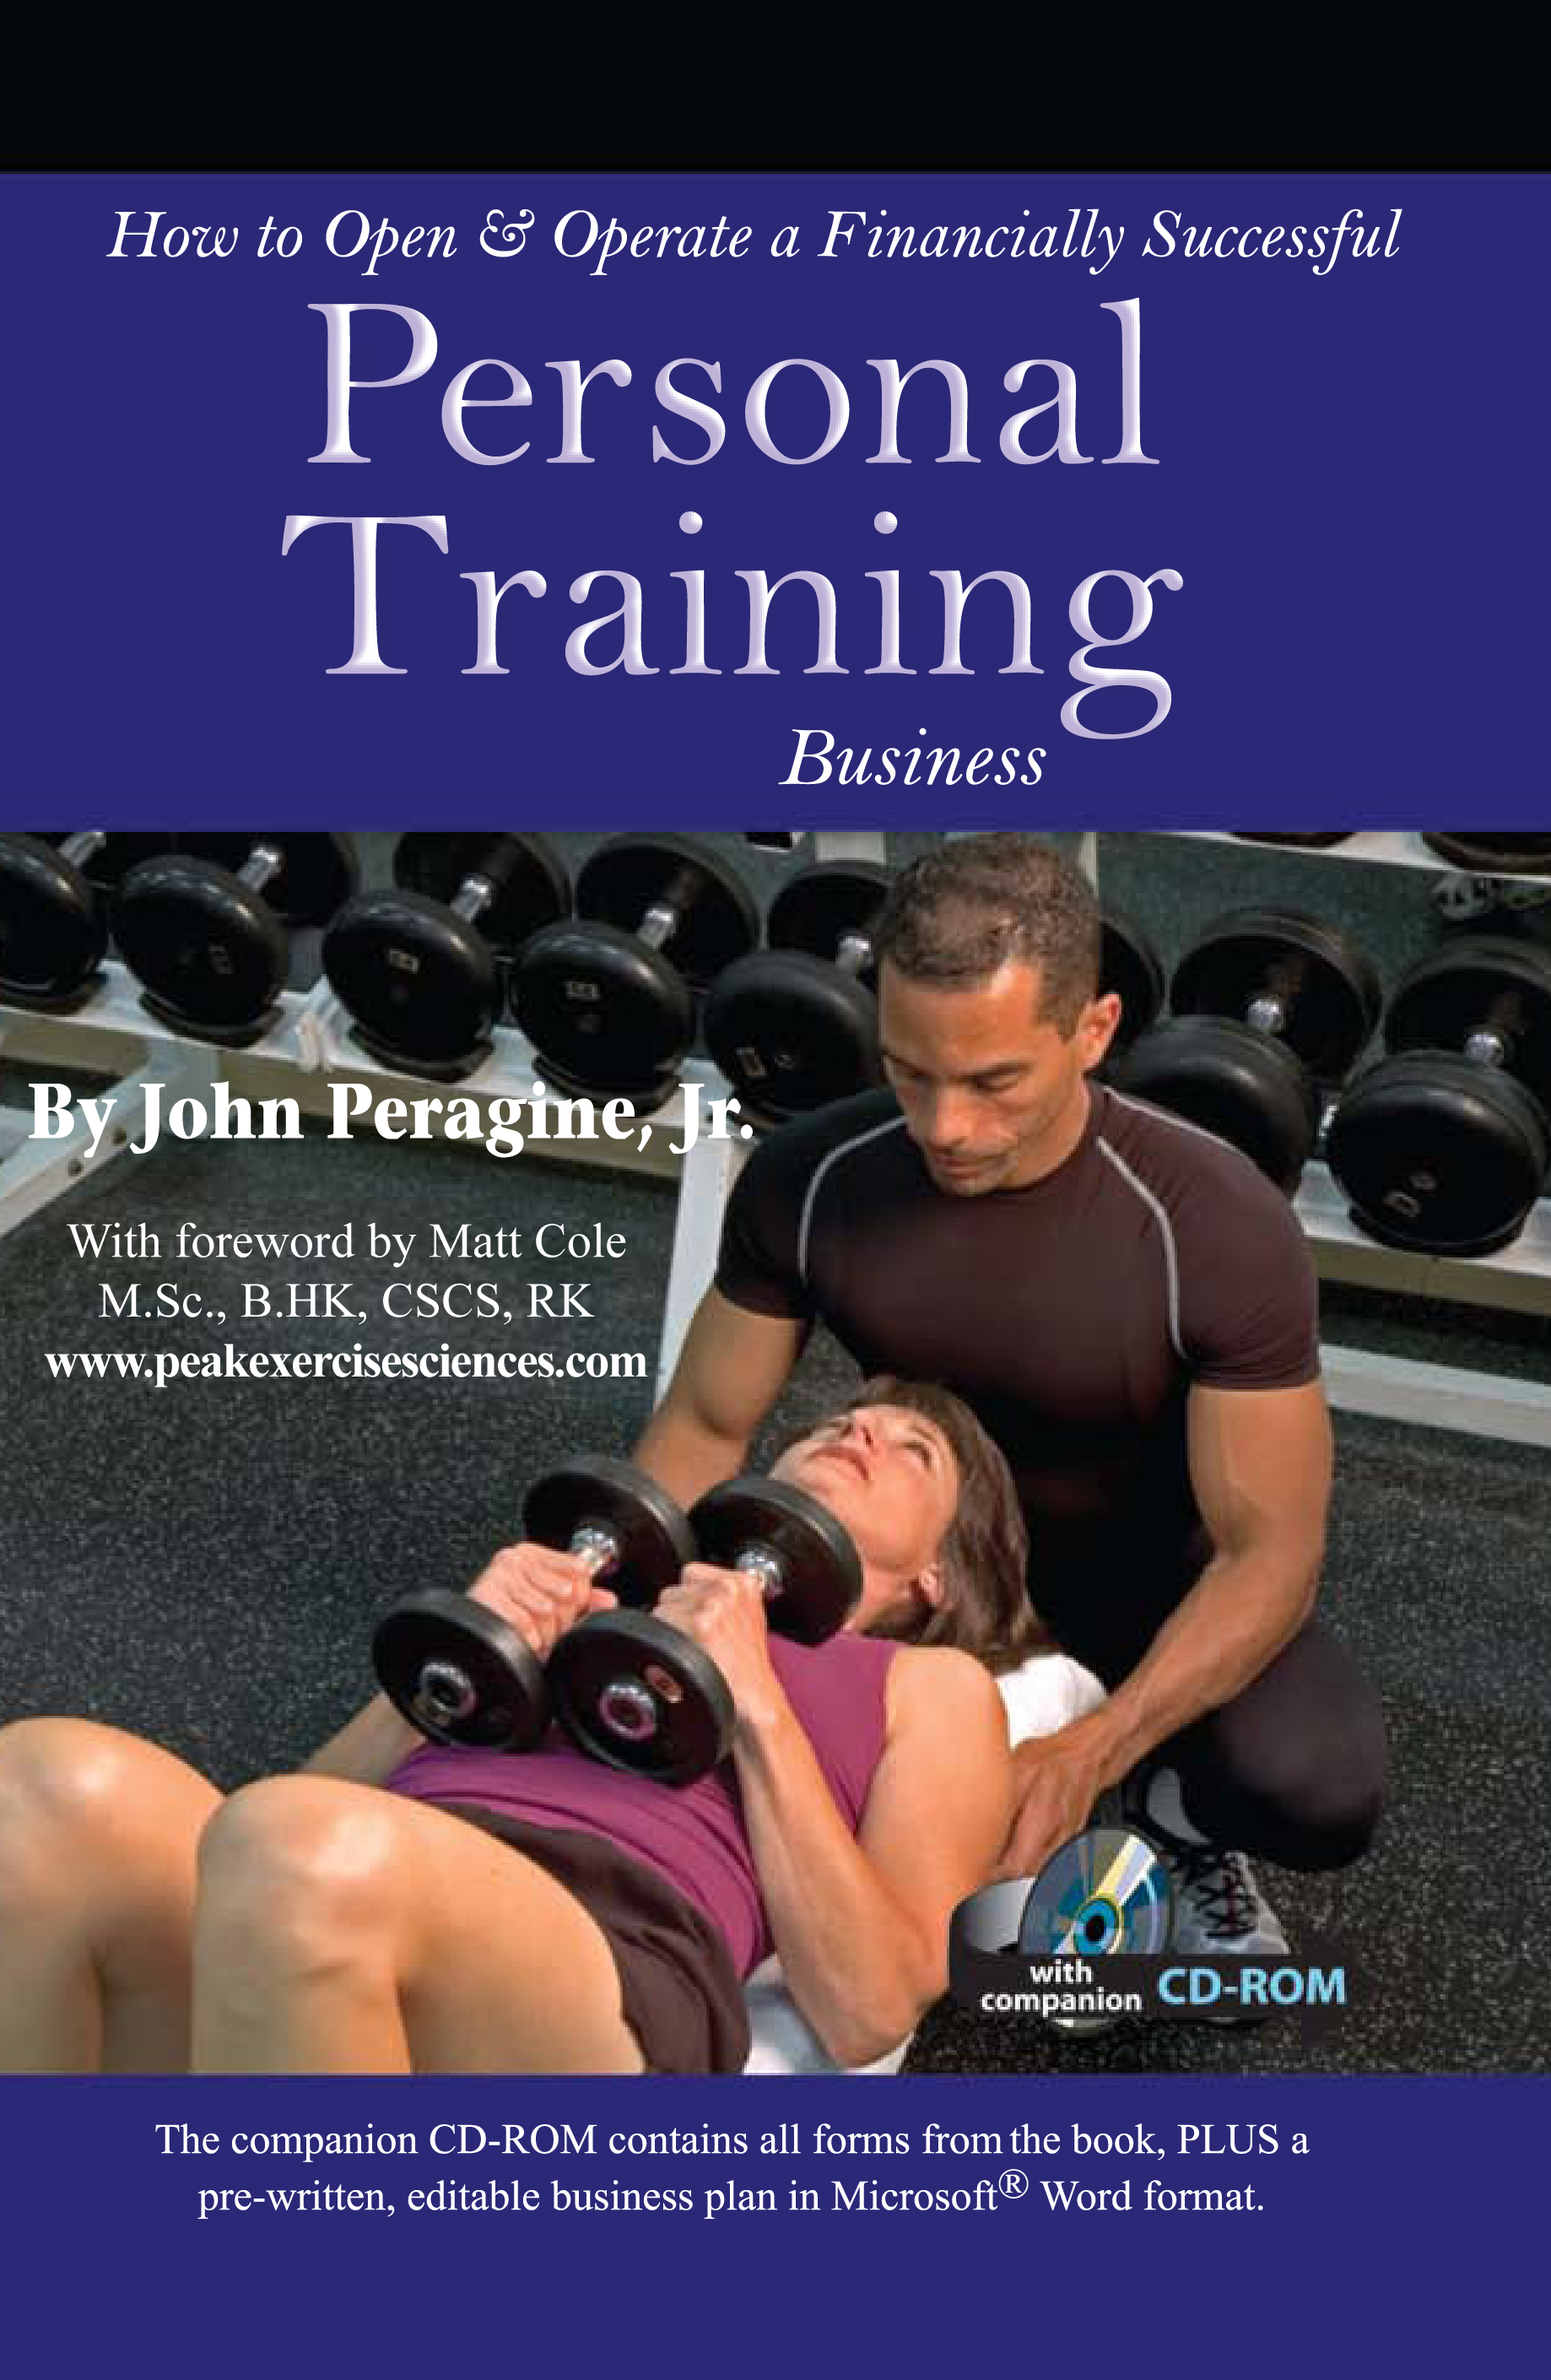 How to Open & Operate a Financially Successful Personal Training Business With Companion CD-ROM